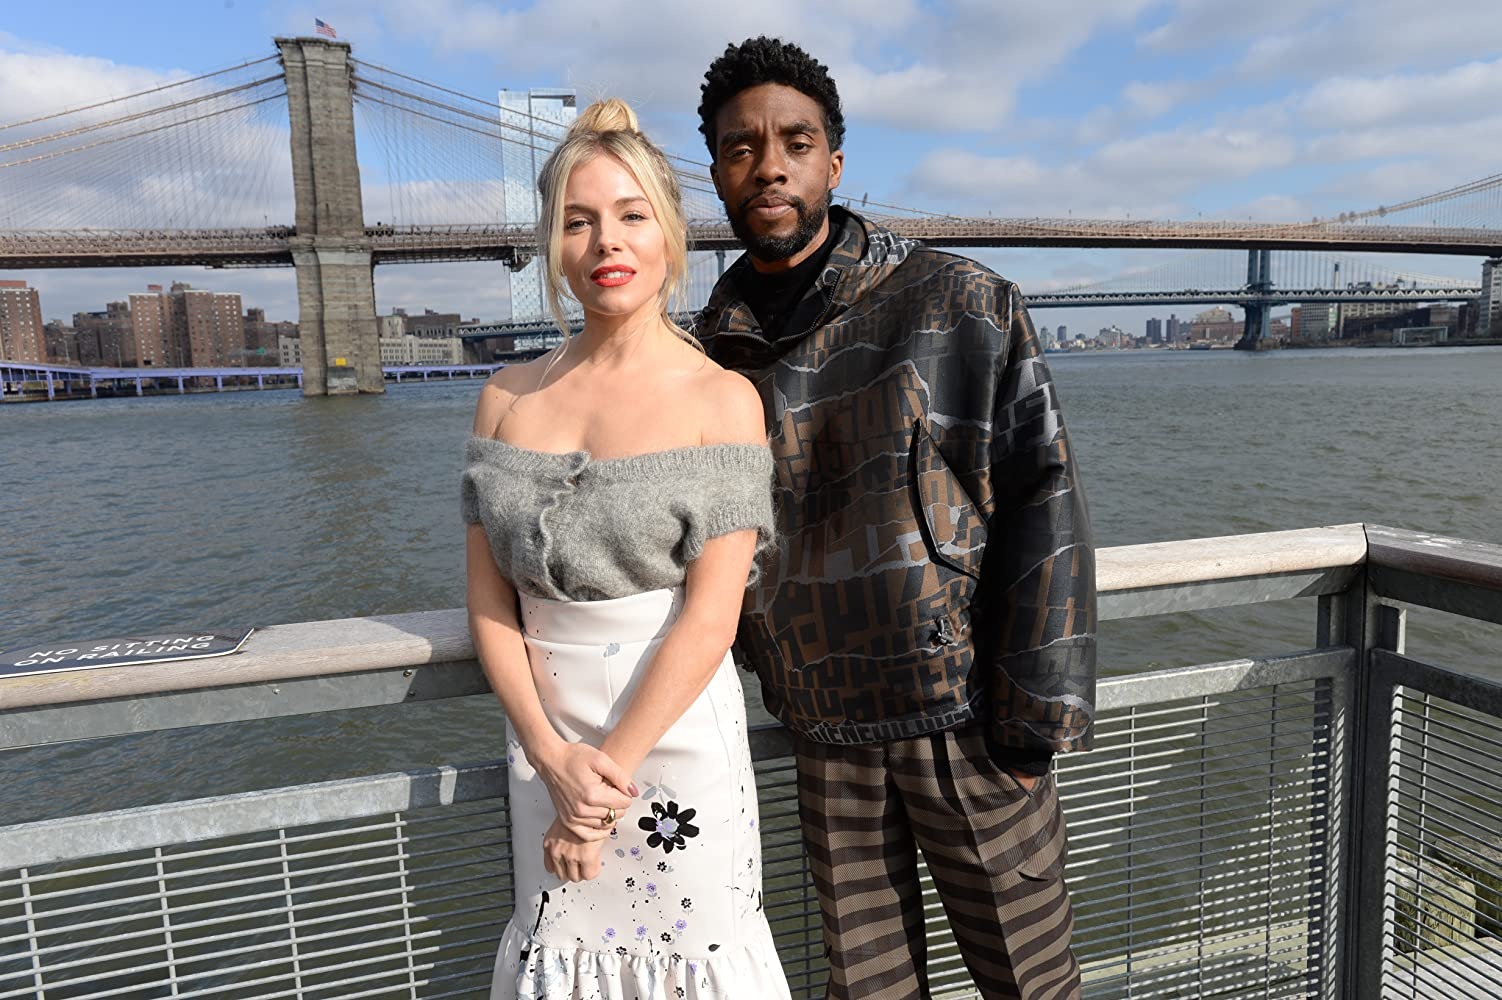 Sienna Miller and Chadwick Boseman at an event for 21 Bridges (2019)